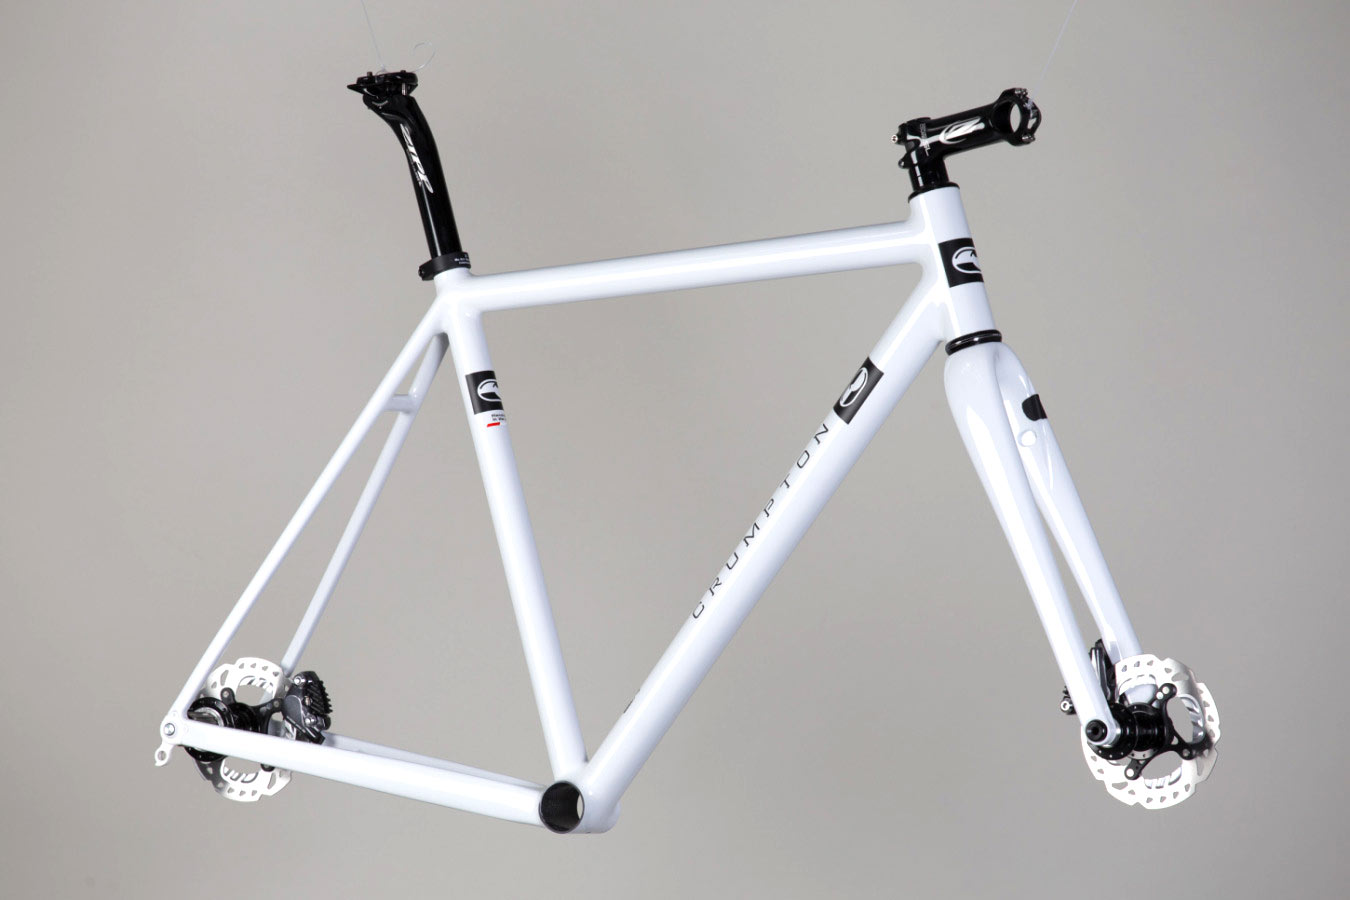 Show in gloss white with matte black graphics, Shimano flat-mount brakes, White Industries hubs, and an Enve gravel fork.